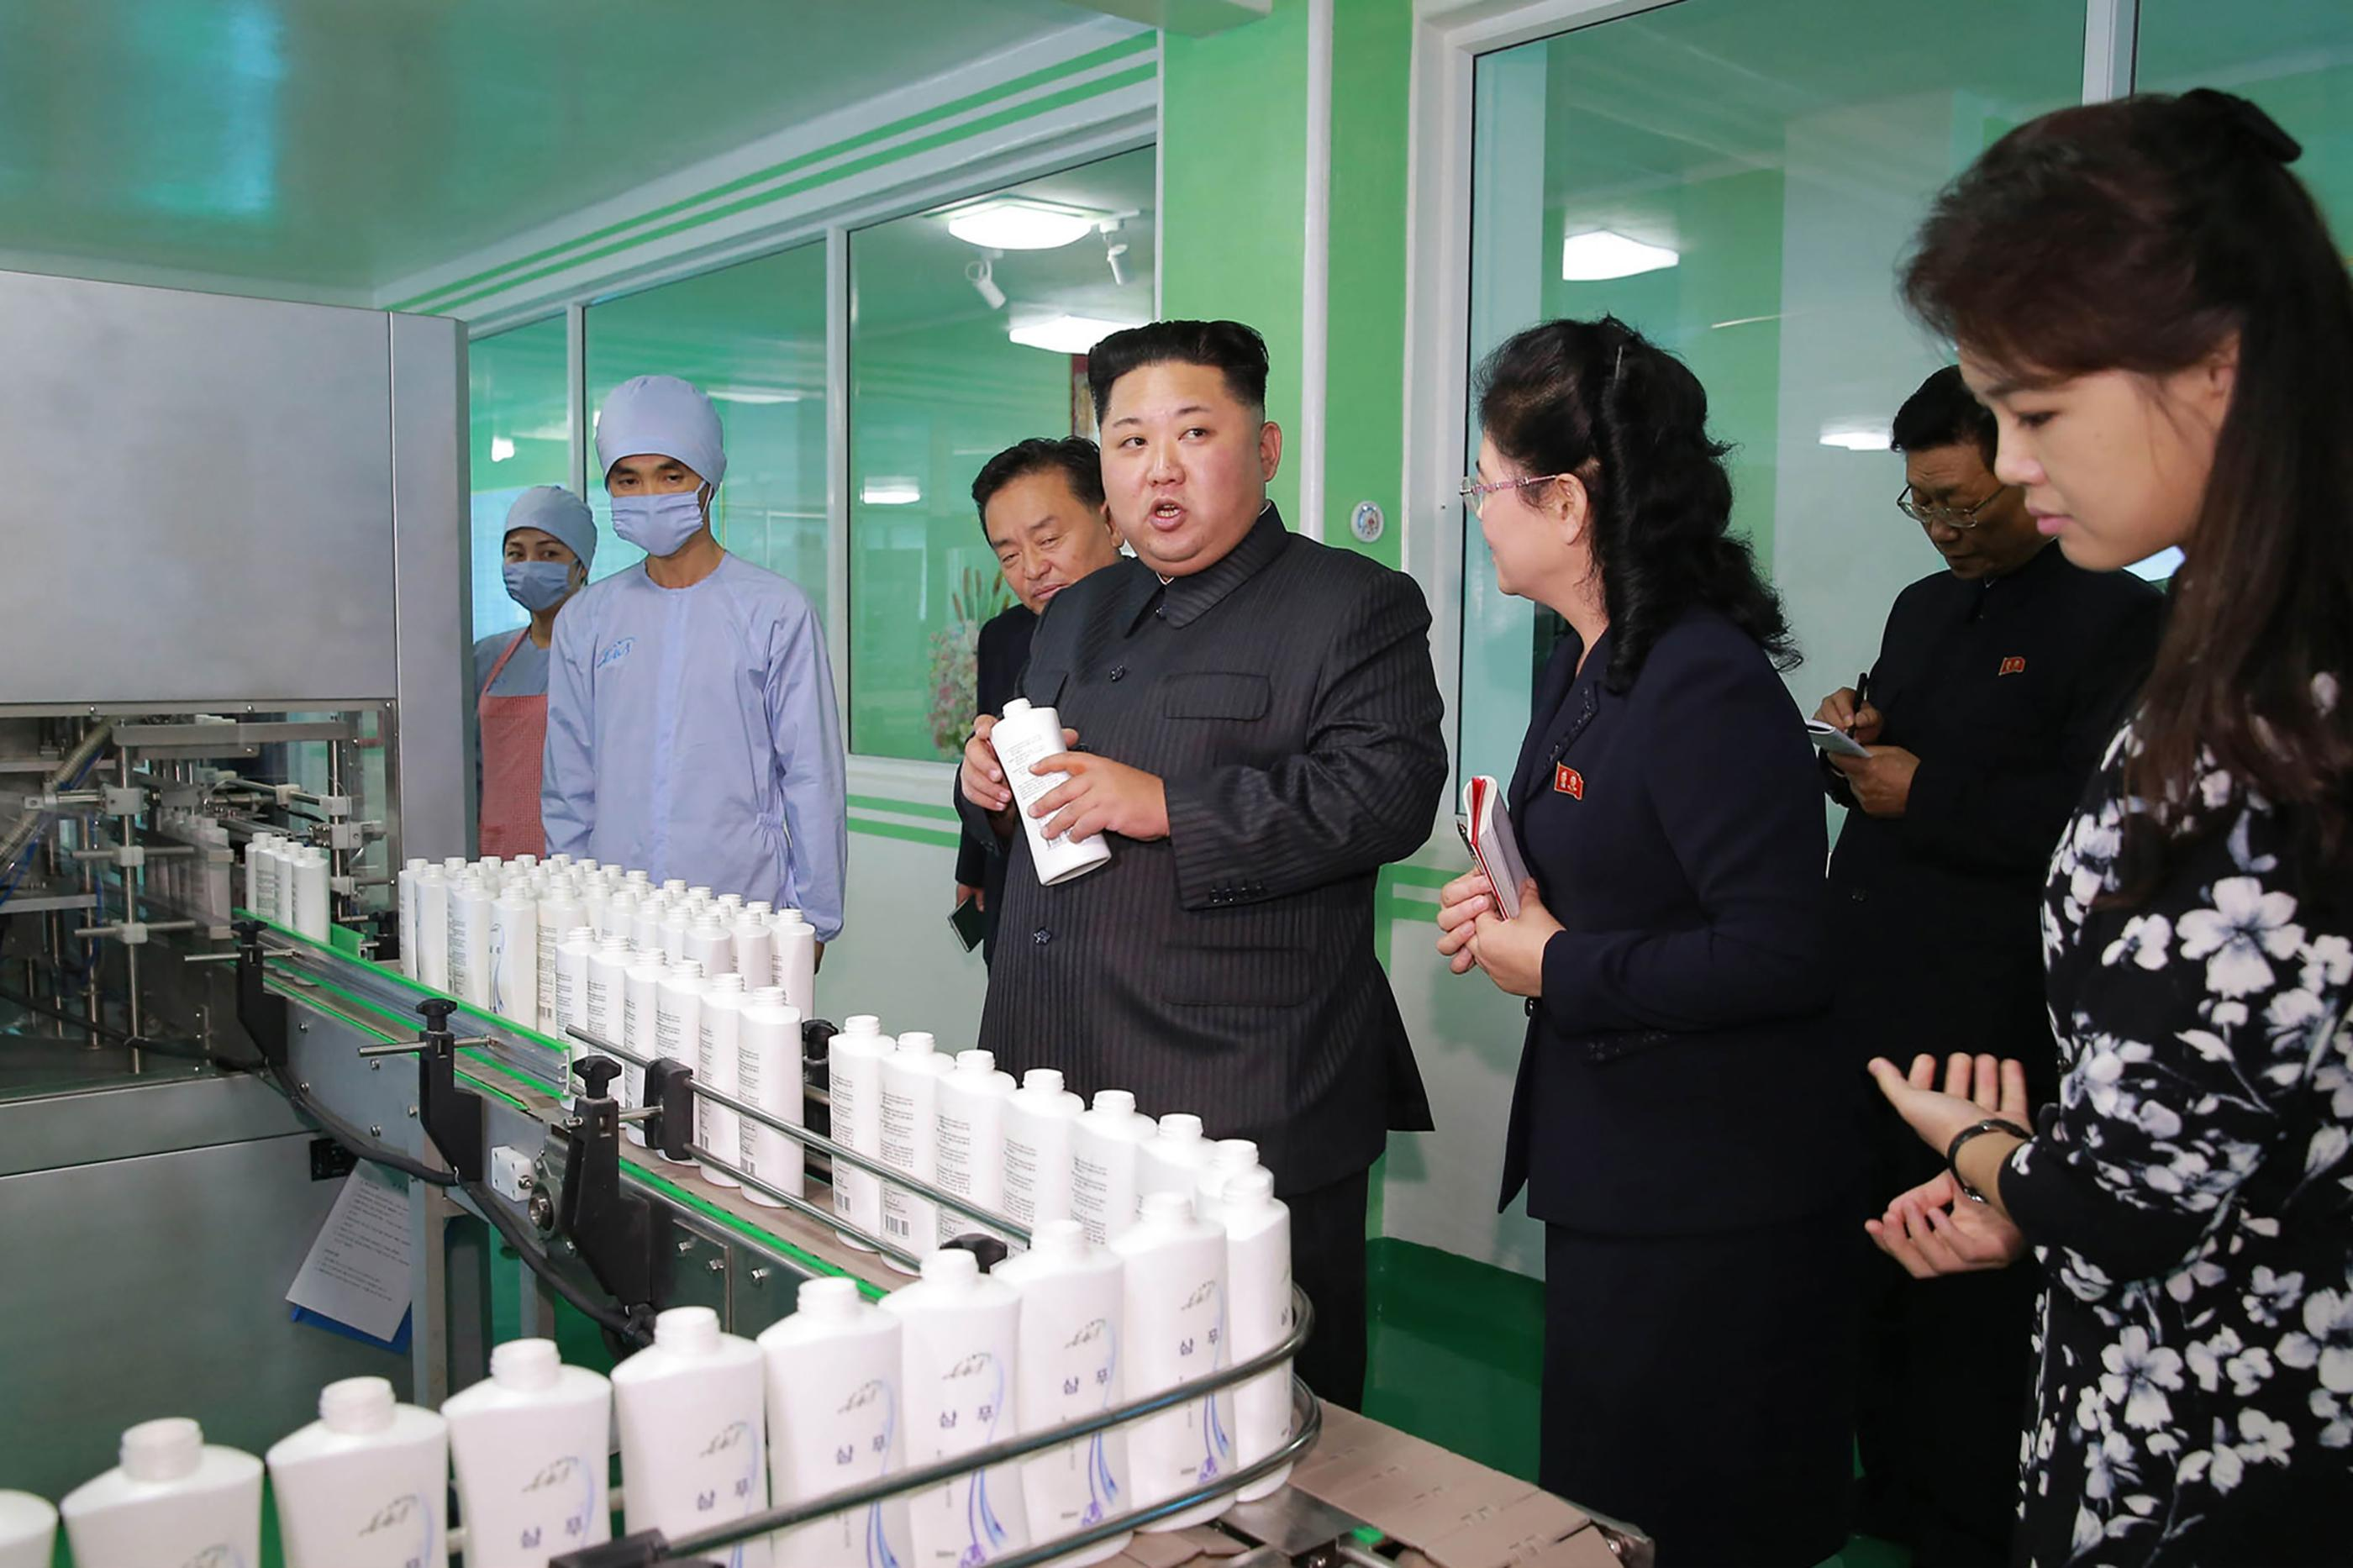 Kim Jong-un visits cosmetics factory with wife and sister